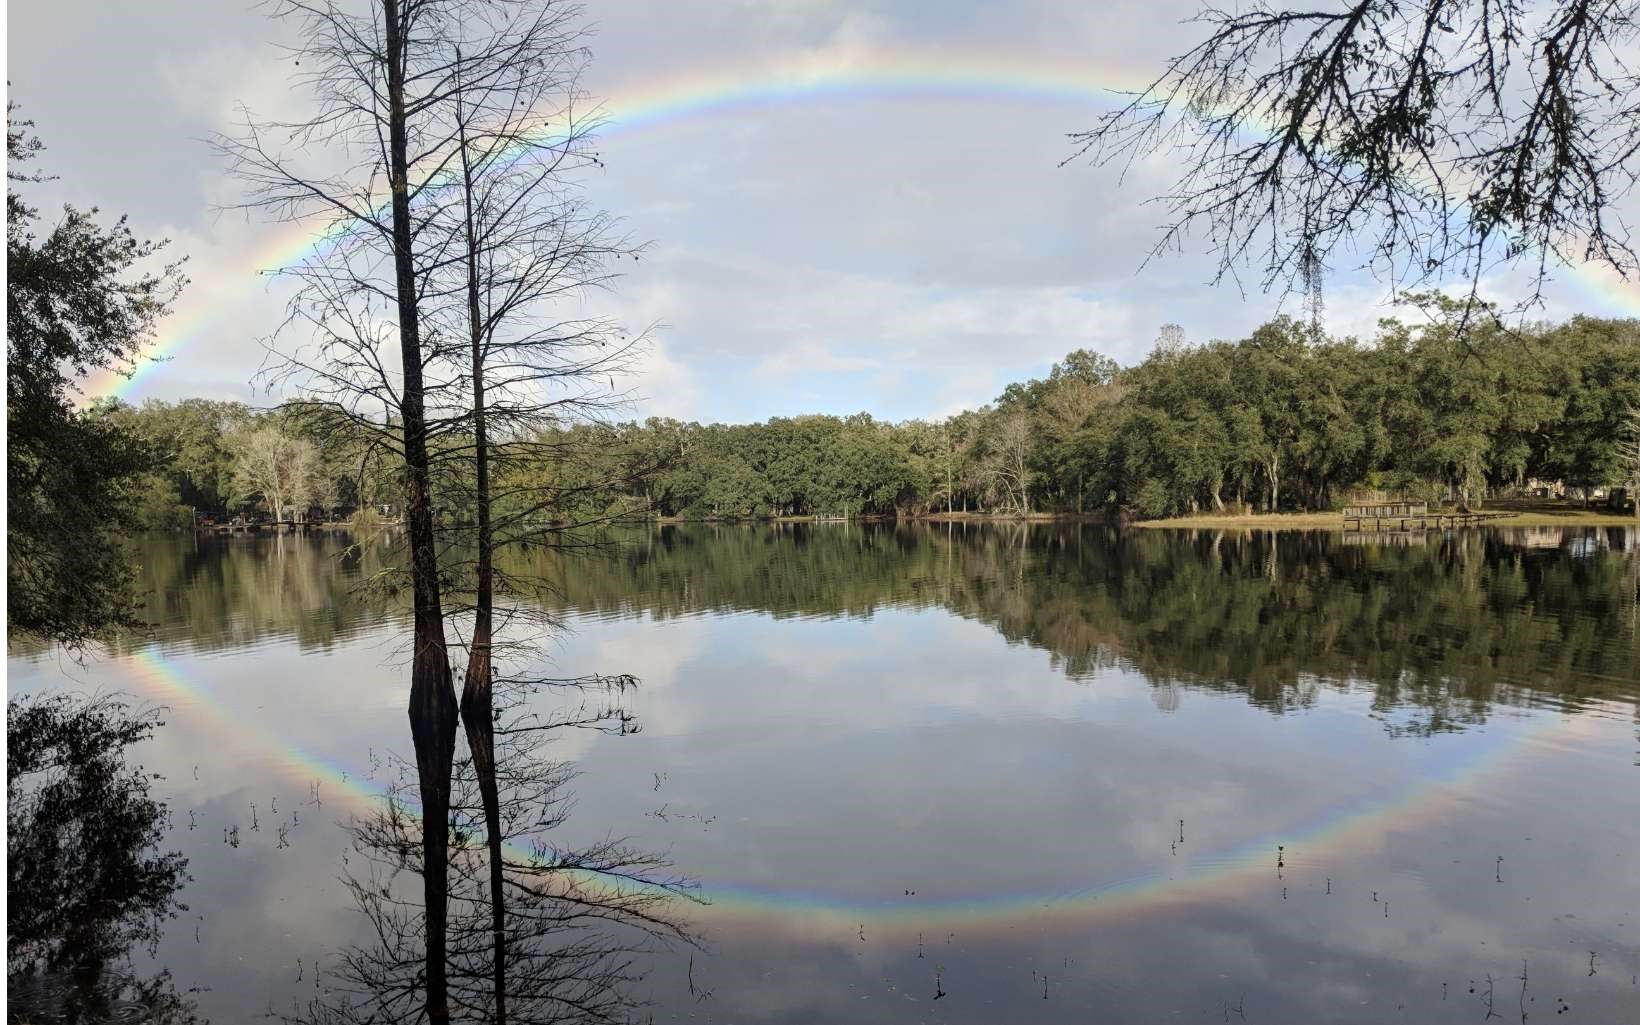 Great location to access the deep end of the Suwannee River